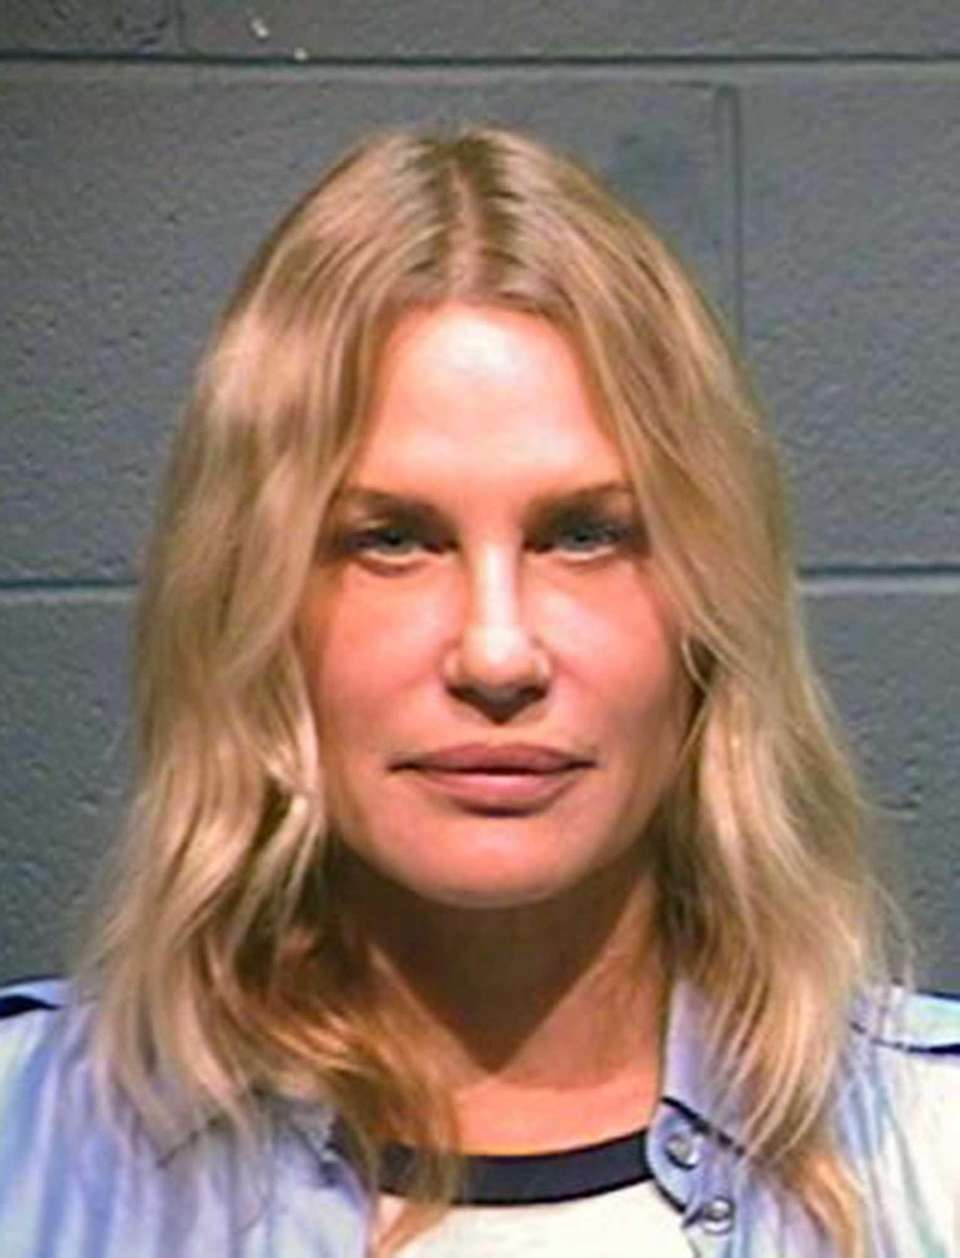 This booking photo provided by the Wood County